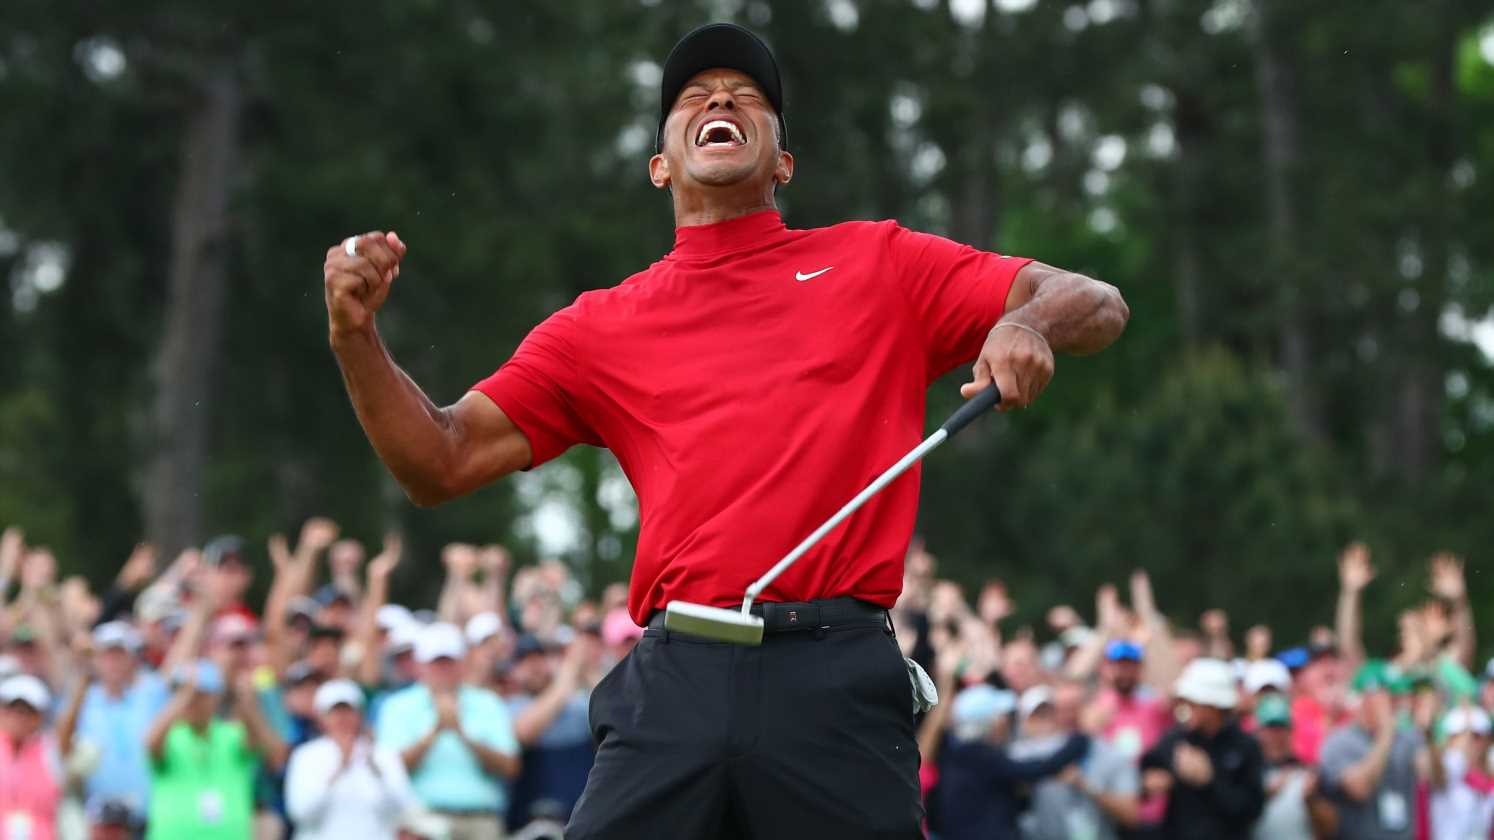 The real truth behind the viral video of Tiger Woods watching doubters roast him